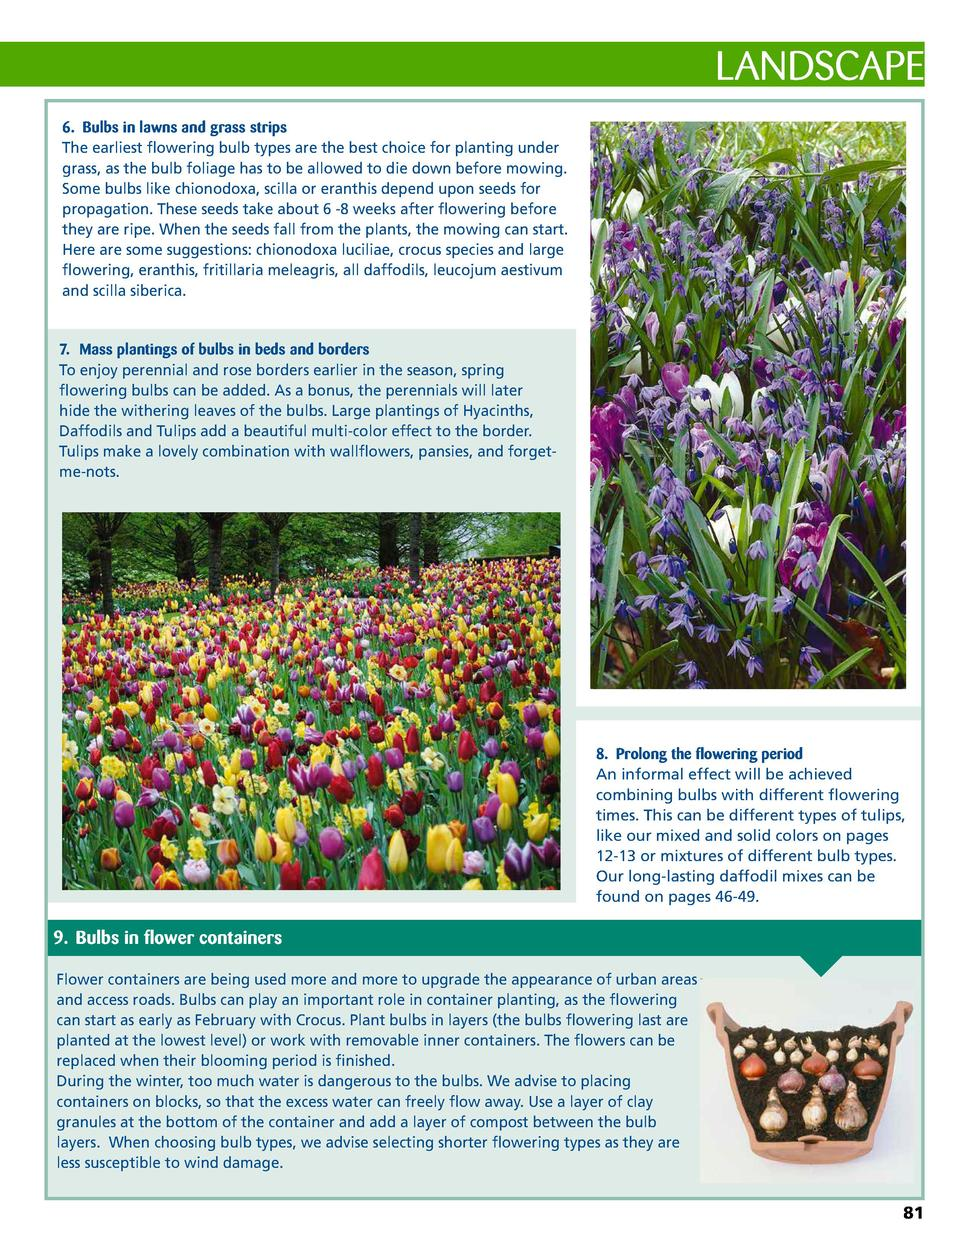 LANDSCAPE 6.  Bulbs in lawns and grass strips The earliest flowering bulb types are the best choice for planting under gra...